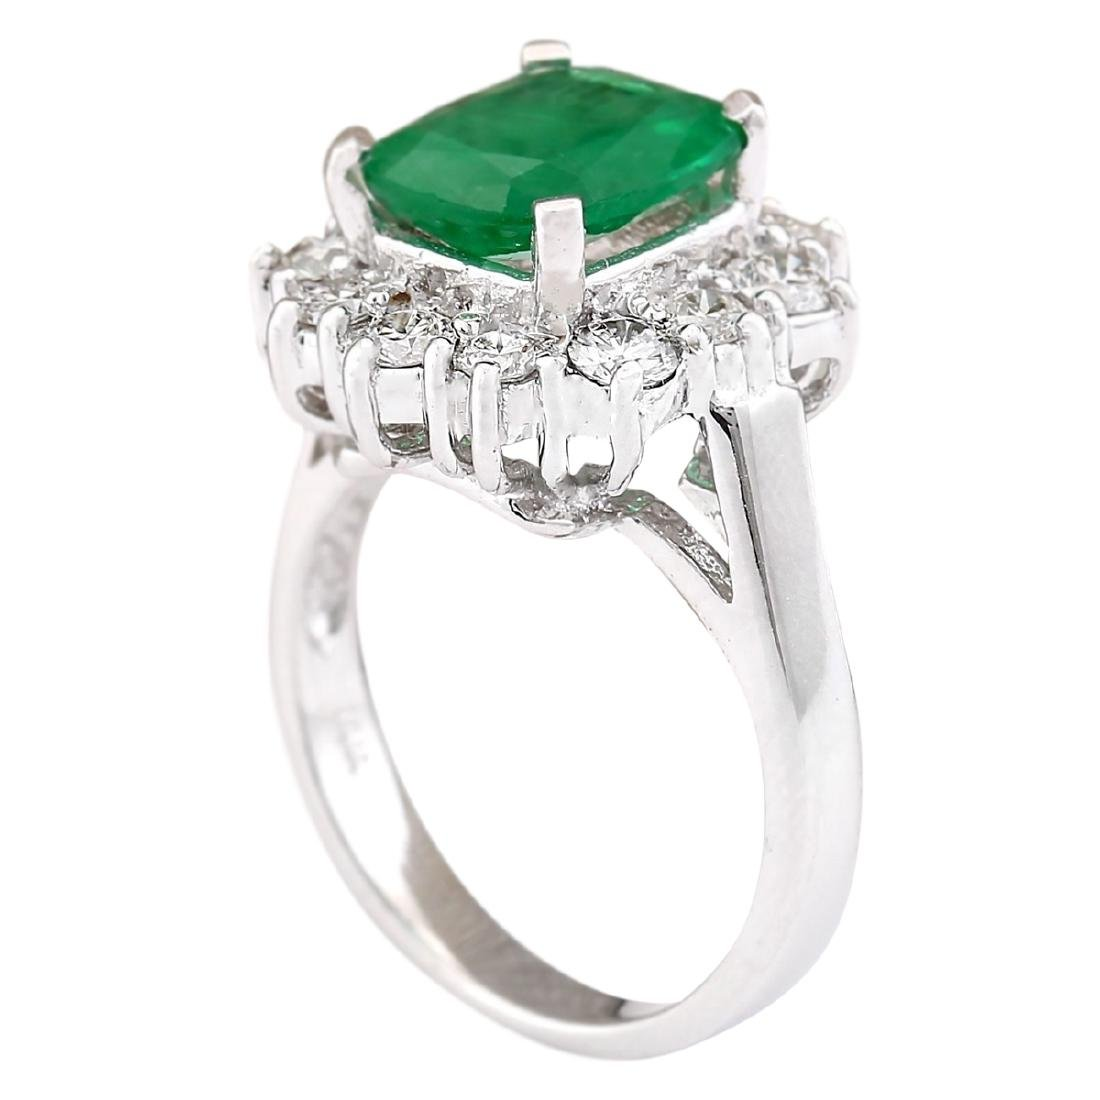 3.20 CTW Natural Emerald And Diamond Ring In 18K White - 3